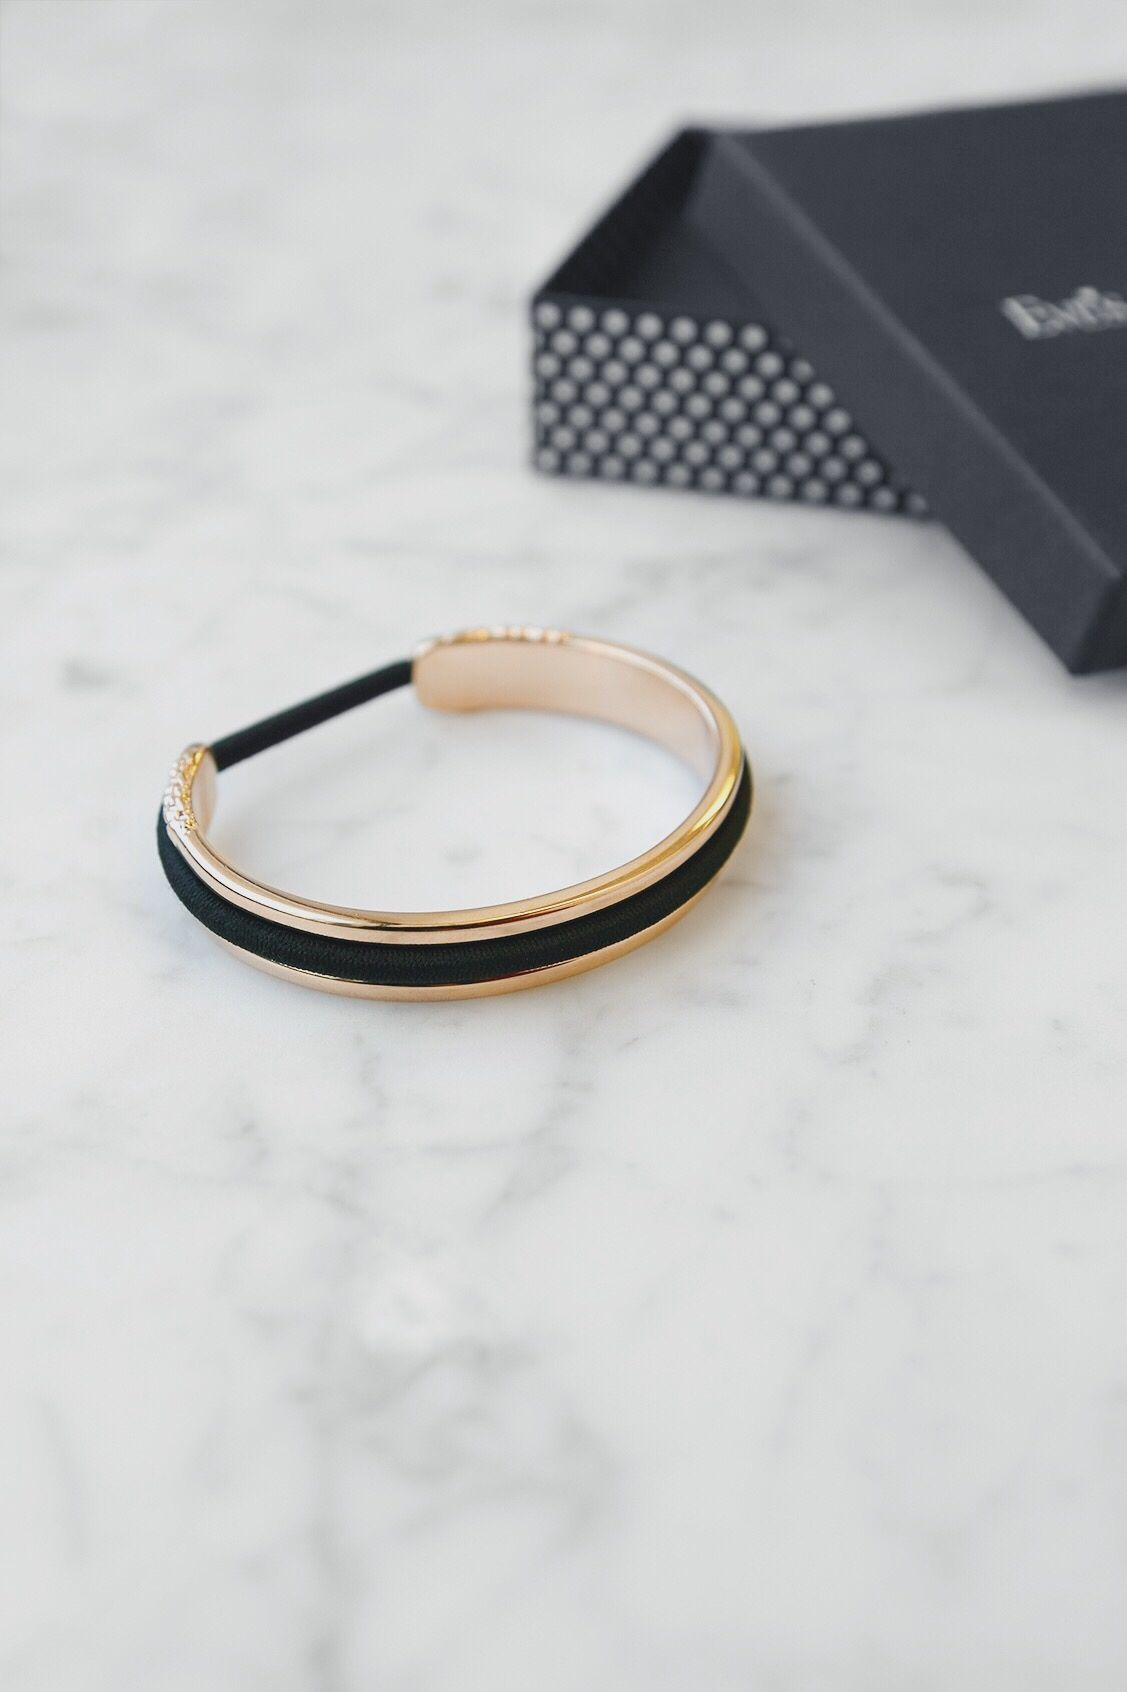 Maria Shireen Classic Gold Hair Tie Bracelet in 2019  3f3375207d3